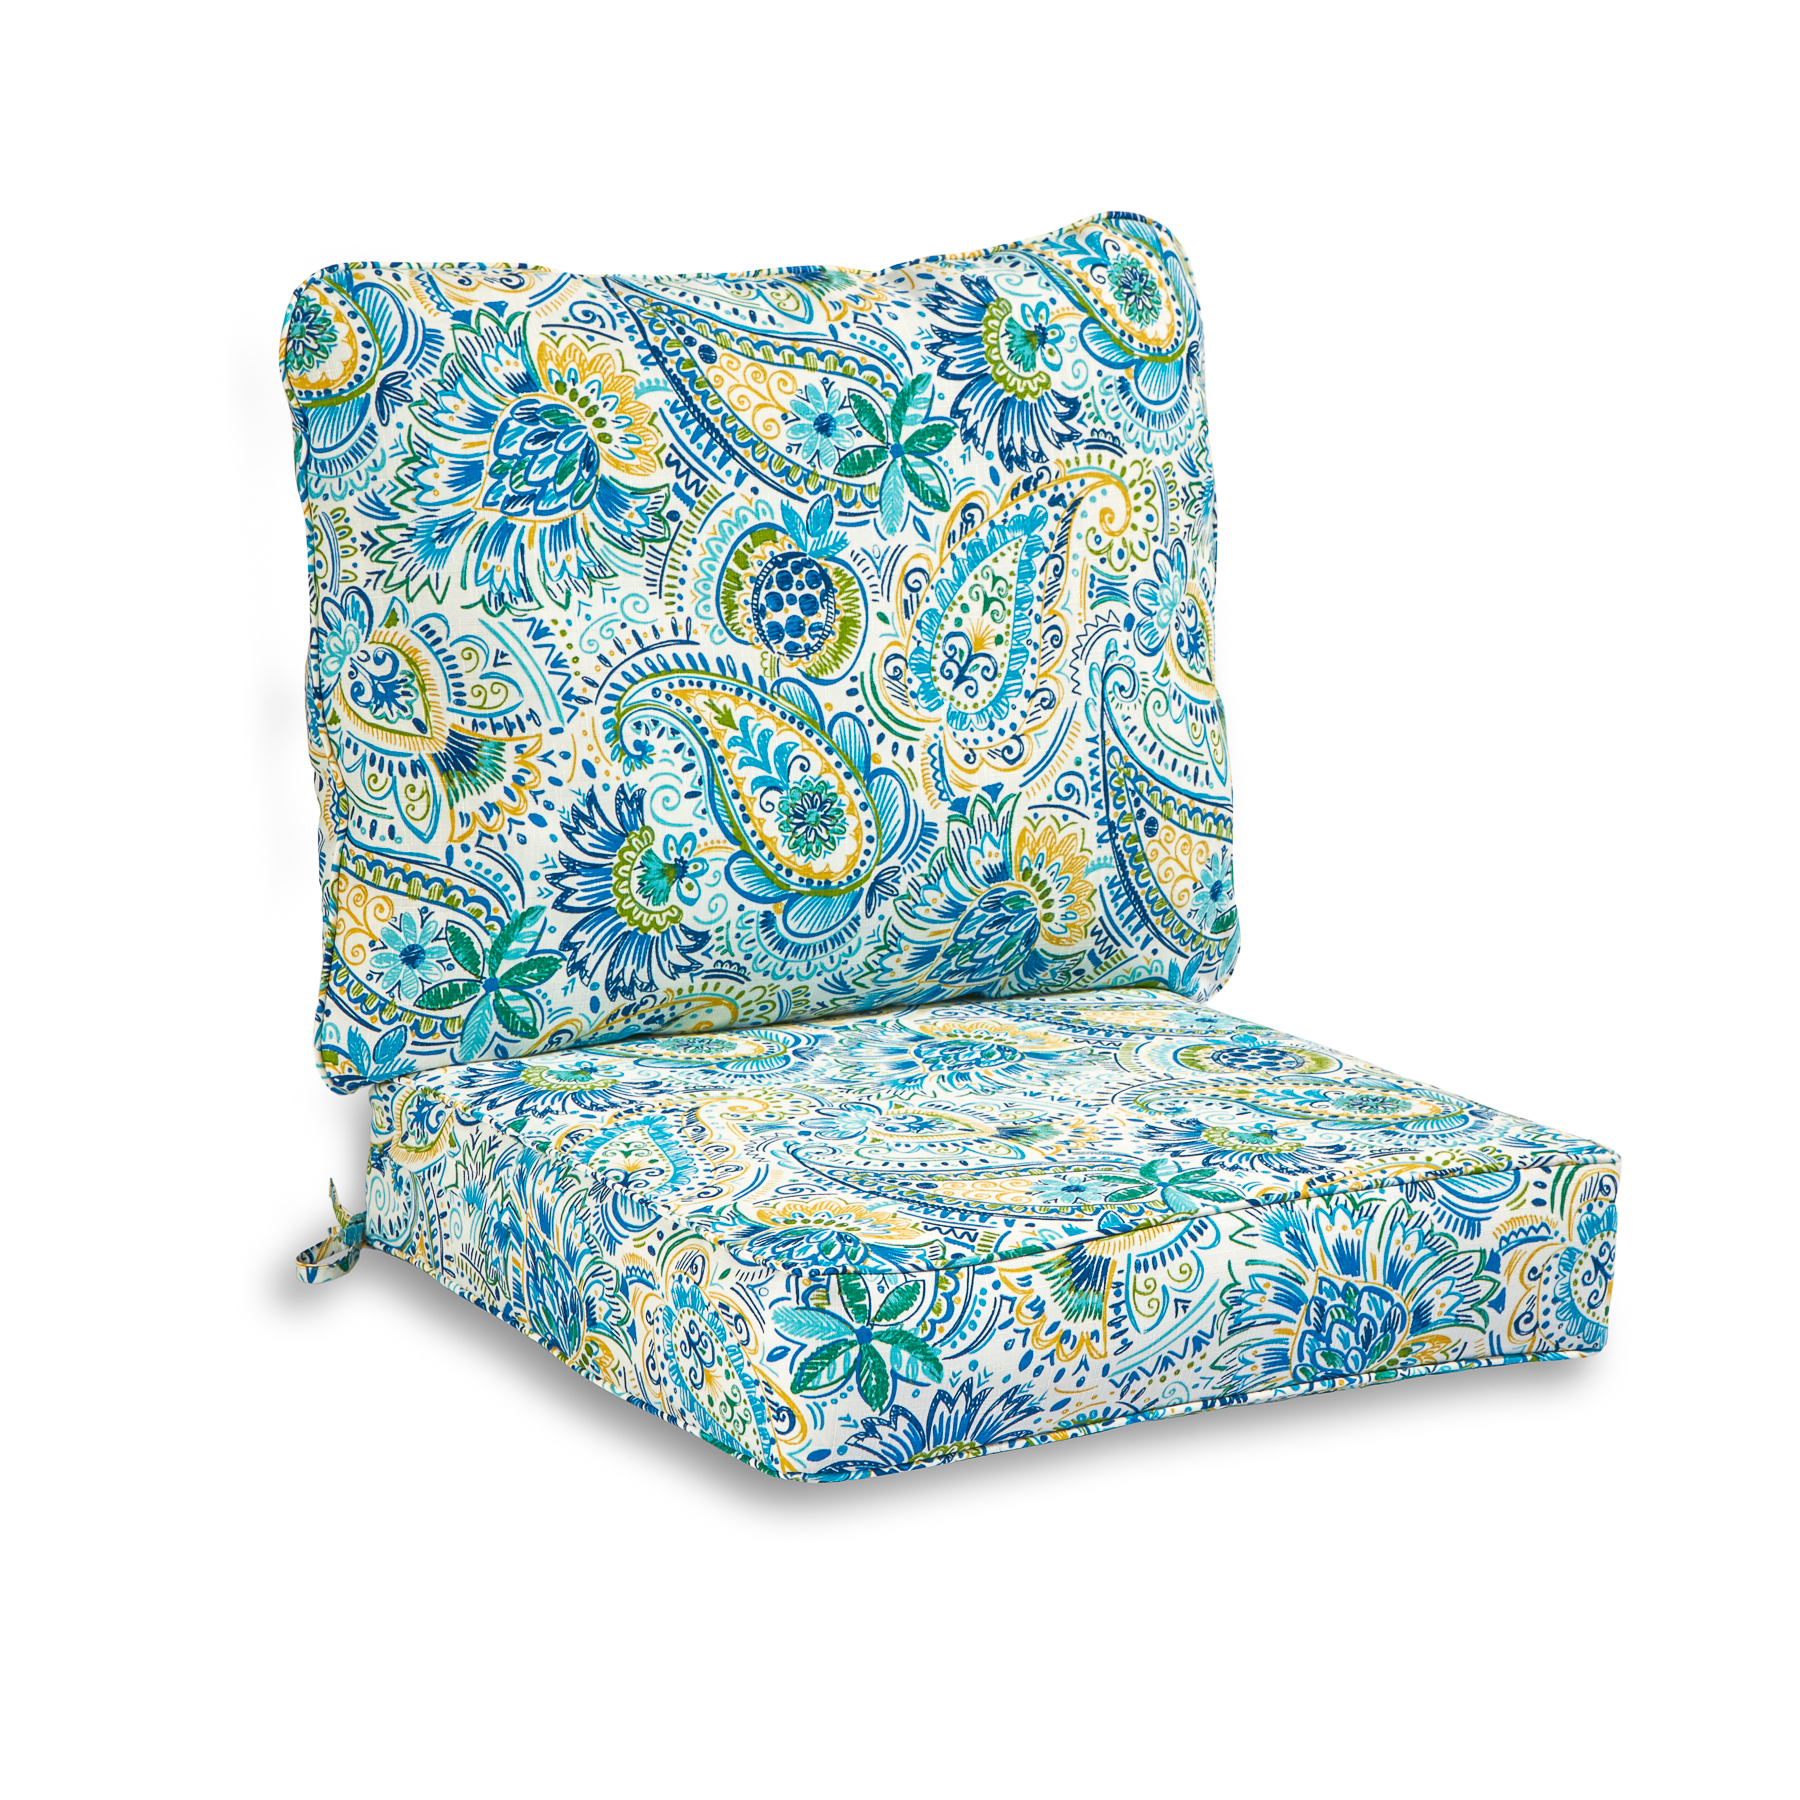 Favorite Baltic Patio Sofas With Cushions Pertaining To Greendale Home Fashions Baltic Outdoor Deep Seat Cushion Set (View 11 of 25)